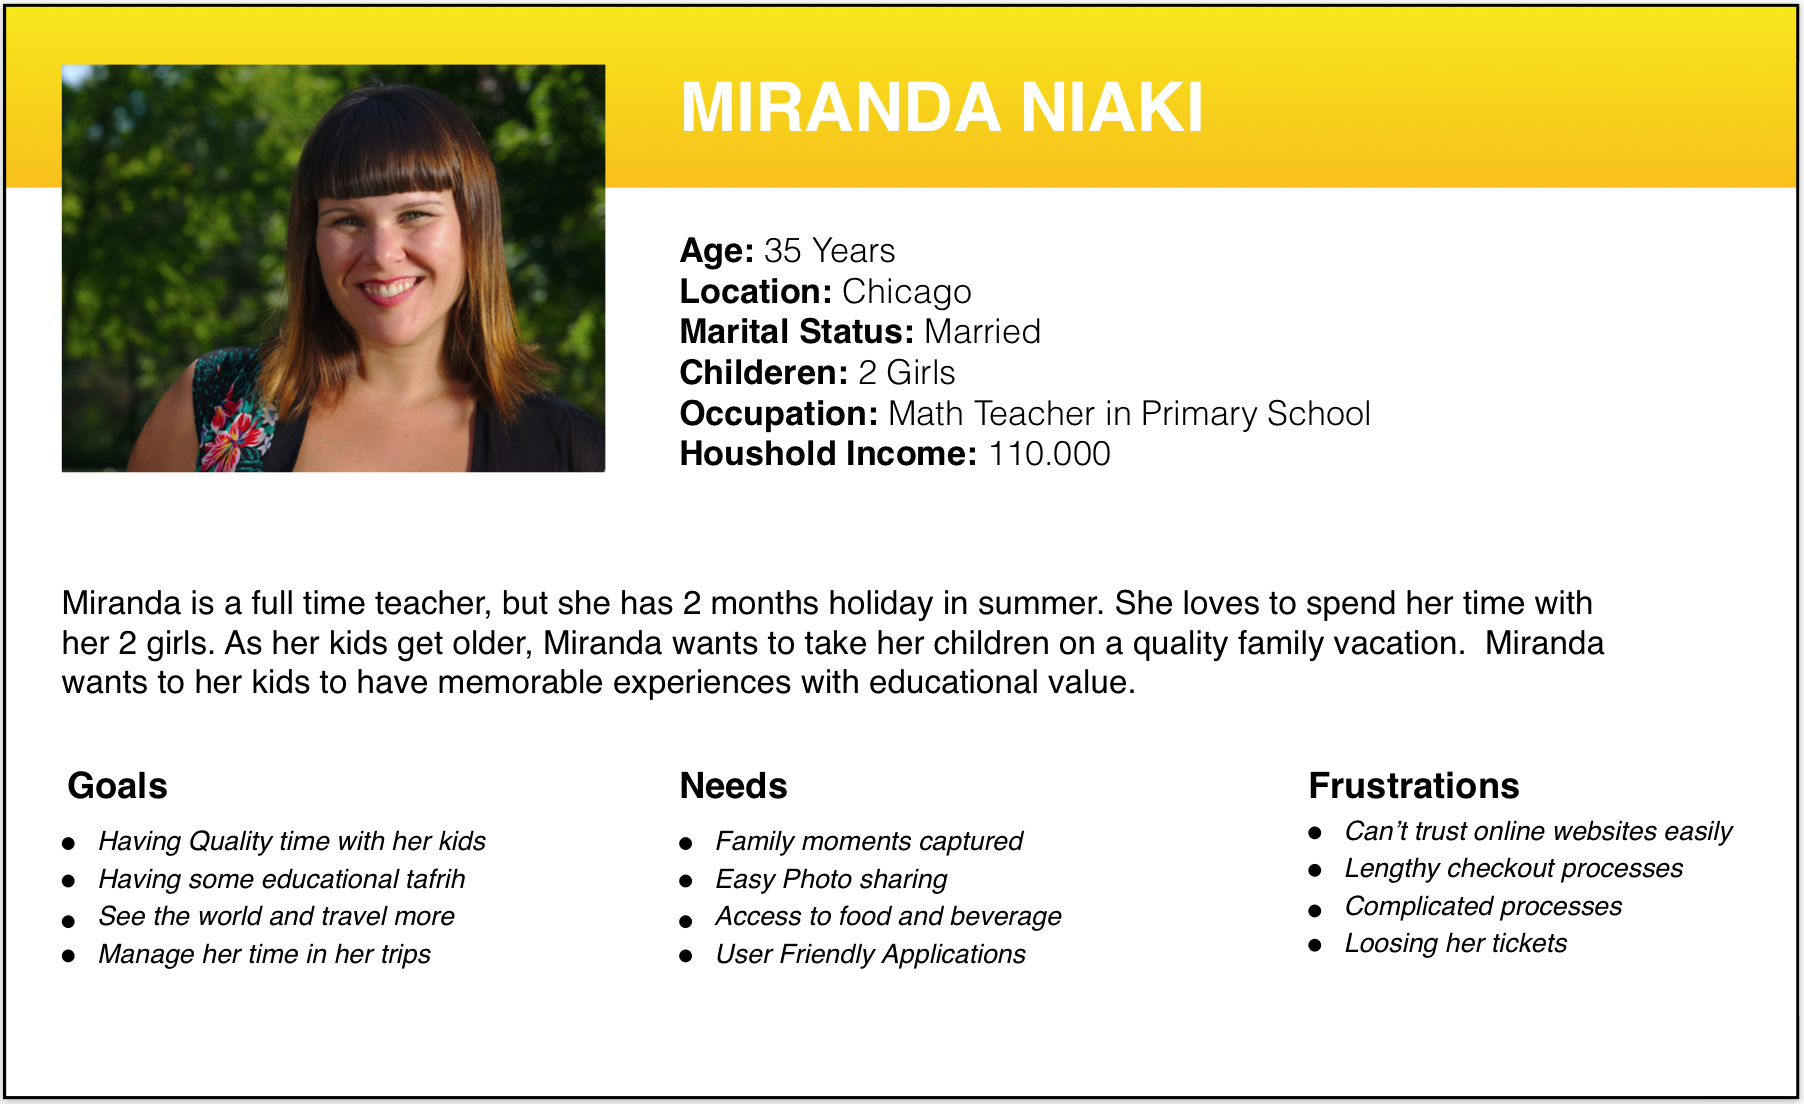 As her kids get older, Miranda wants to take her children on a quality family vacation.  Miranda wants to her kids to have memorable experiences with educational value.